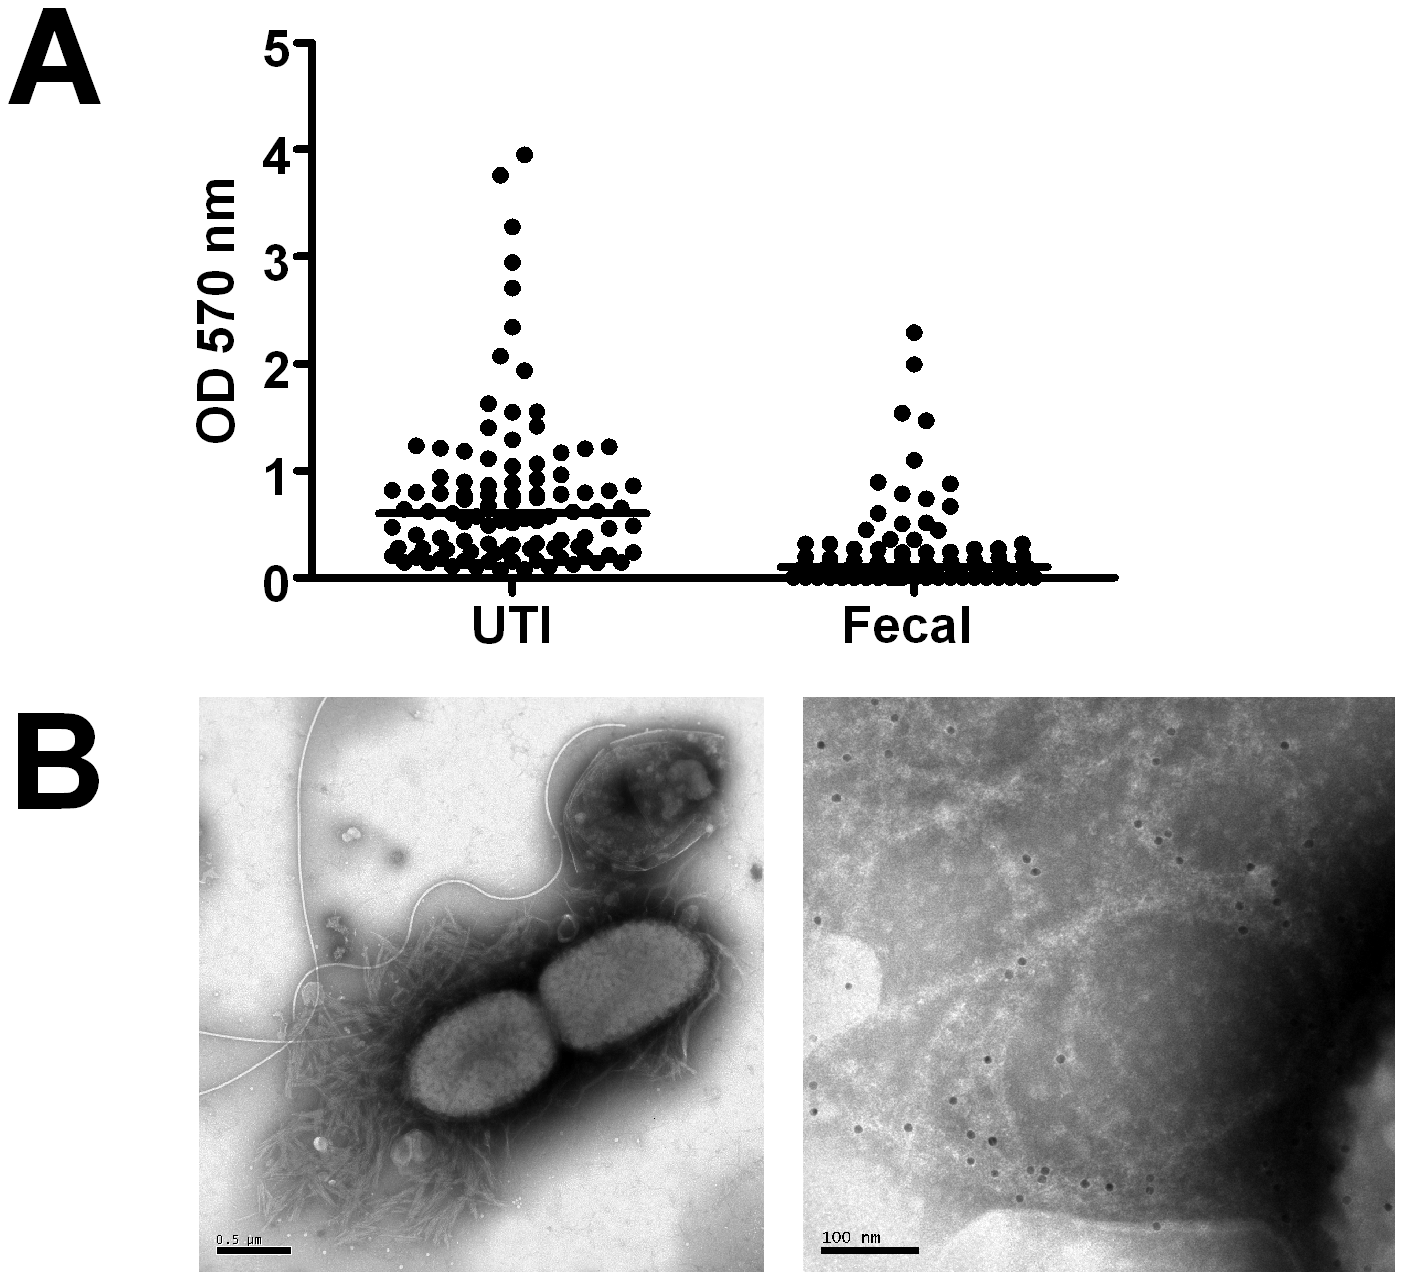 Biofilm expression by uropathogenic and fecal <i>E. coli</i> isolates.